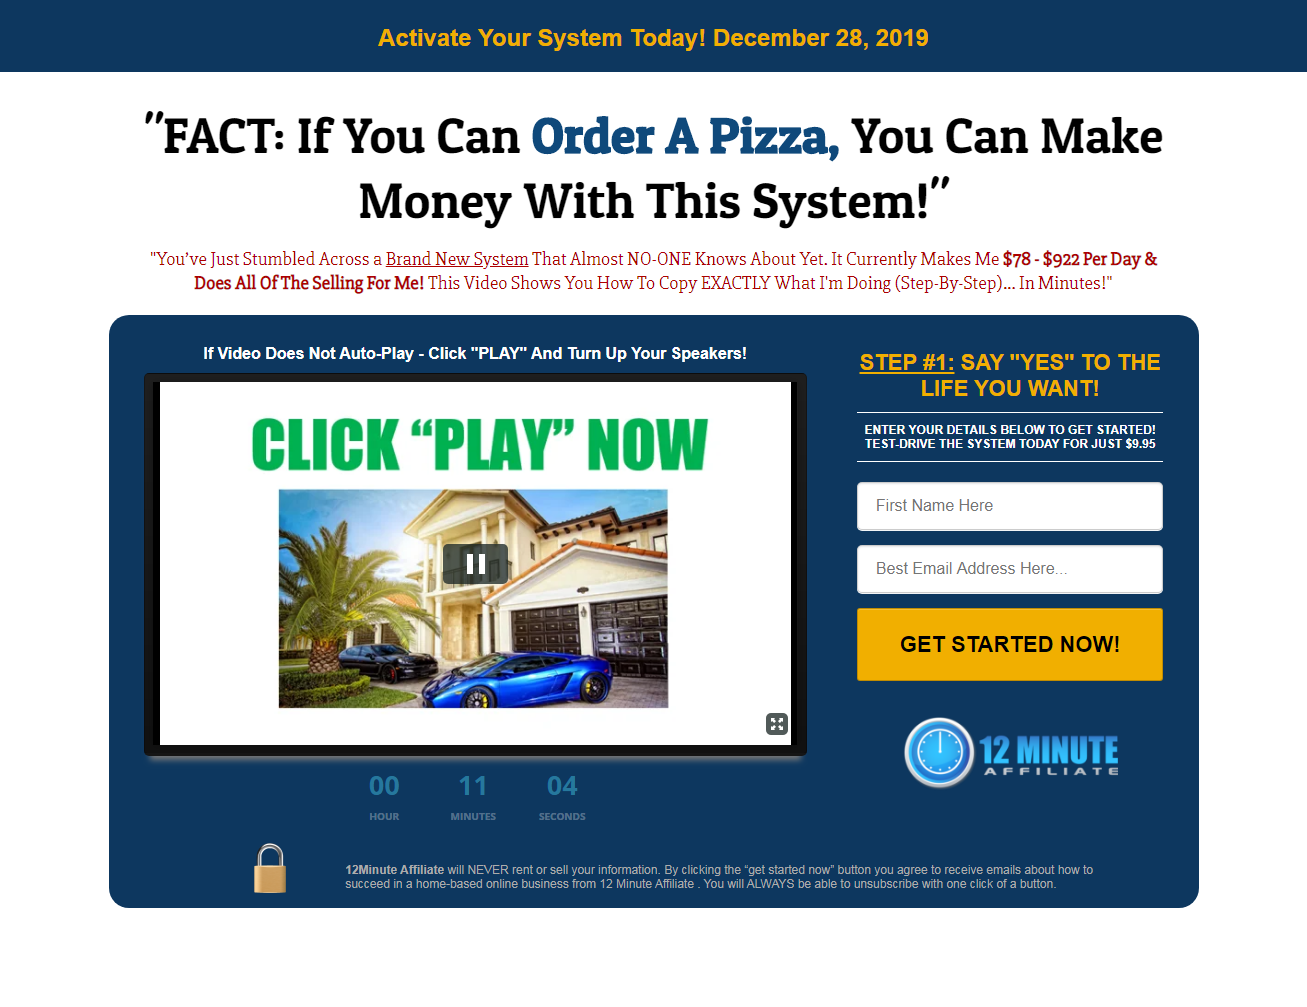 Earn Easy Money By Our Simple Step By Step Instructions Make It Easy For Even The Newest Online Marketer To Have T Earn Easy Money Easy Money Online Easy Money